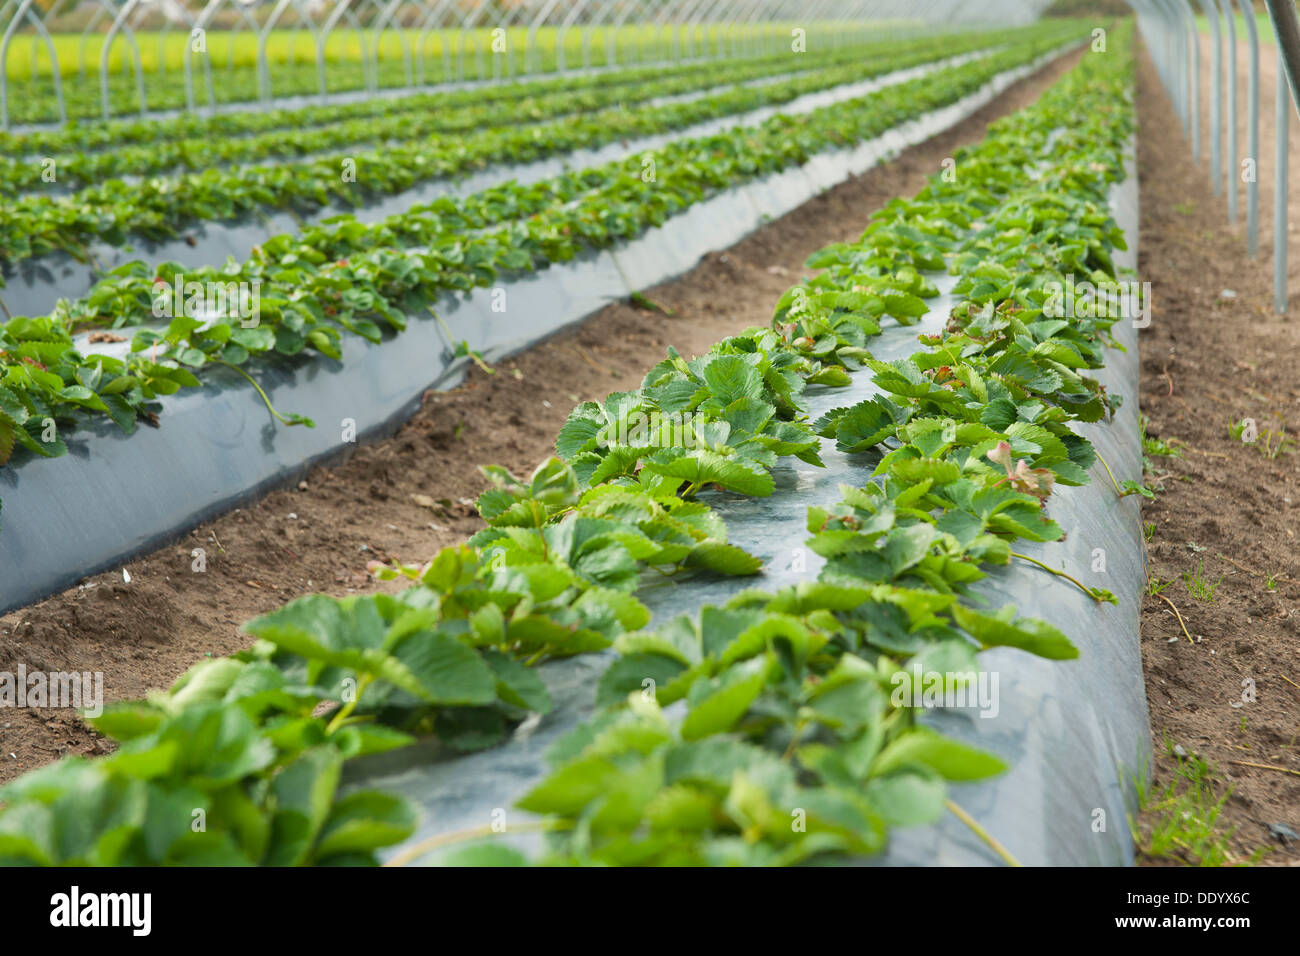 Raised Strawberry Bed High Resolution Stock Photography And Images Alamy